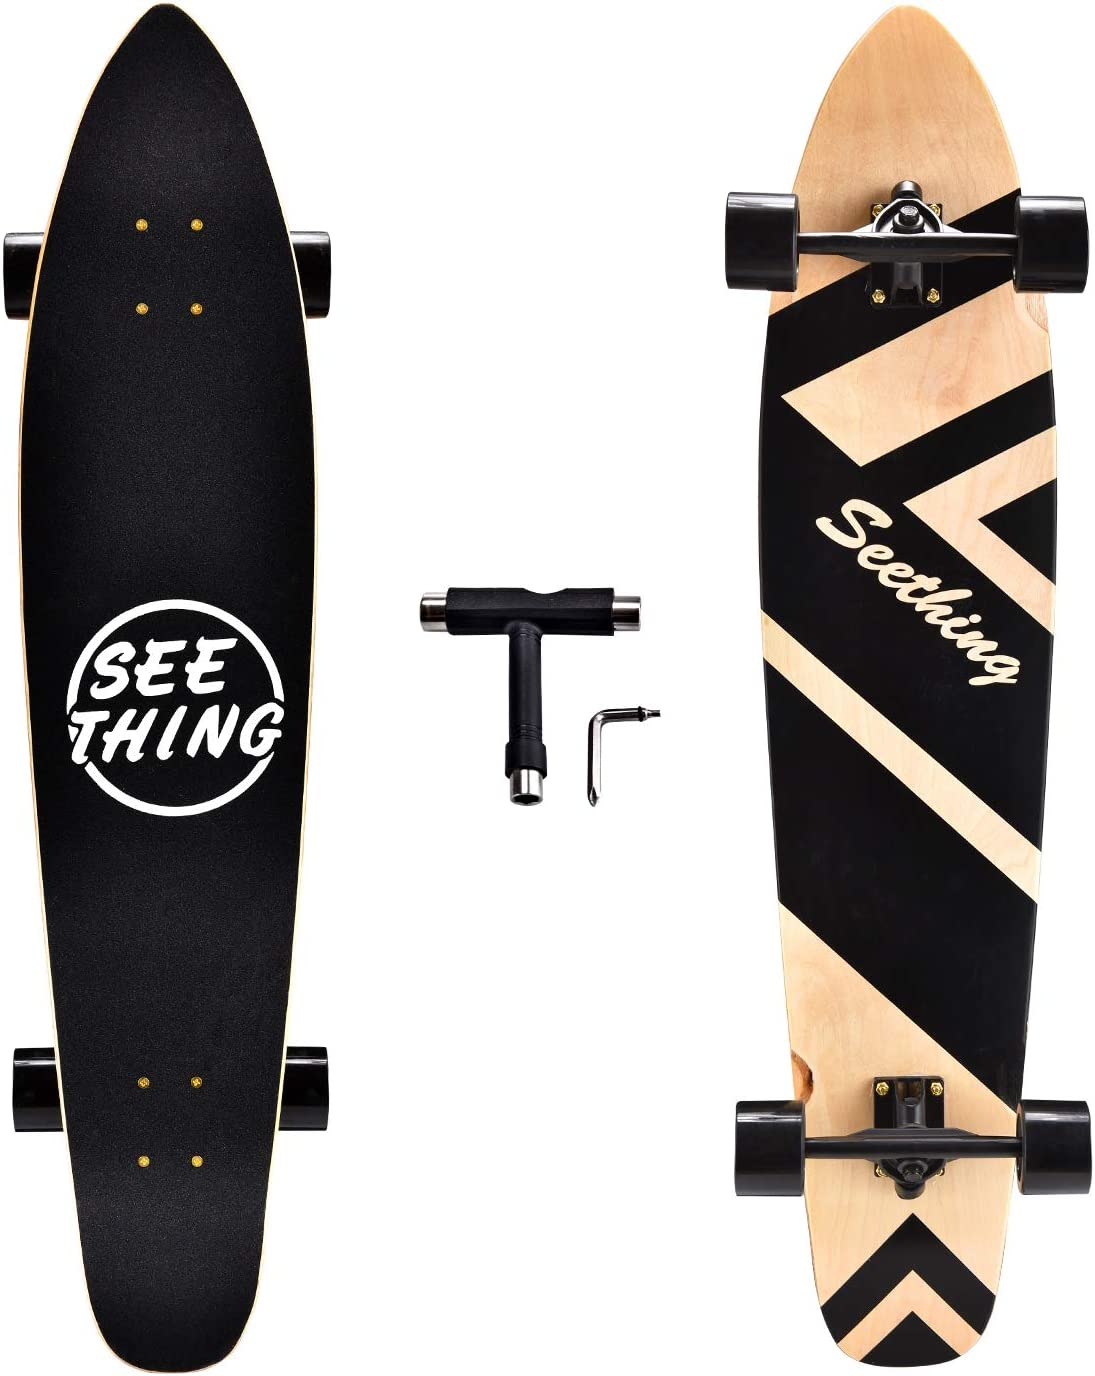 Amazon.com : seething 42 Inch Longboard Skateboard Complete Cruiser, The  Original Artisan Maple Skateboard Cruiser for Cruising, Carving, Free-Style  and Downhill(Black) : Sports & Outdoors